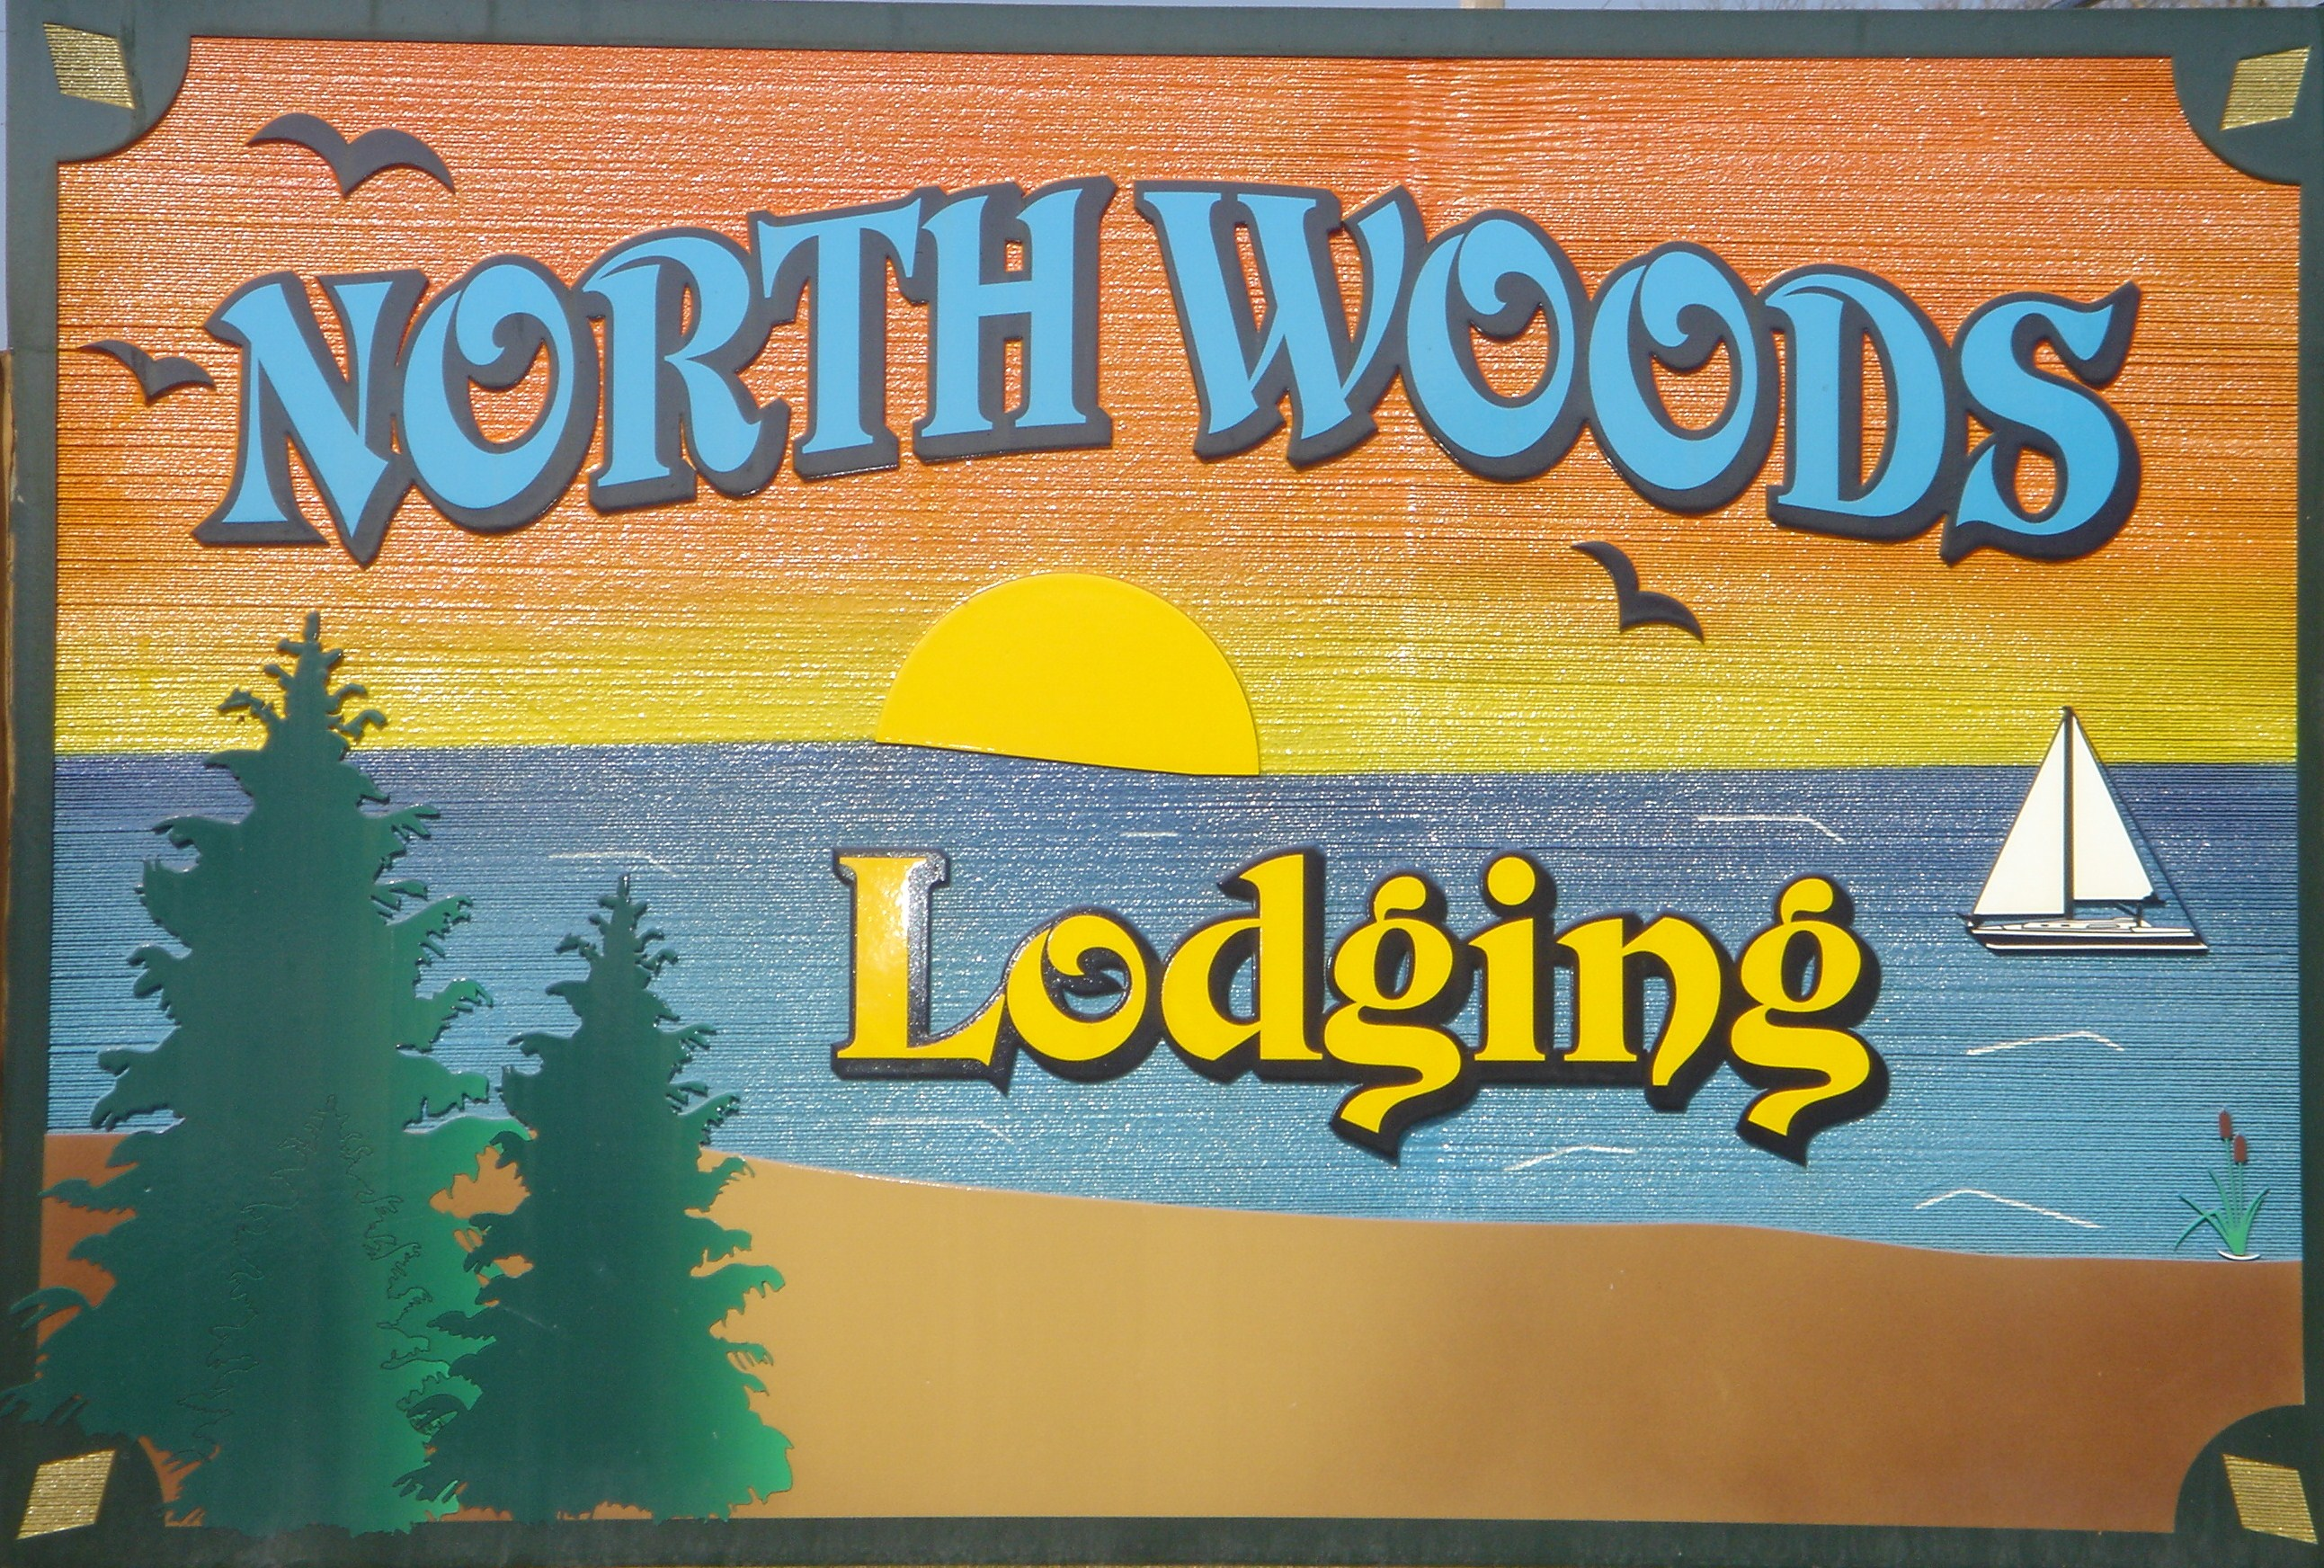 Northwoods Lodging